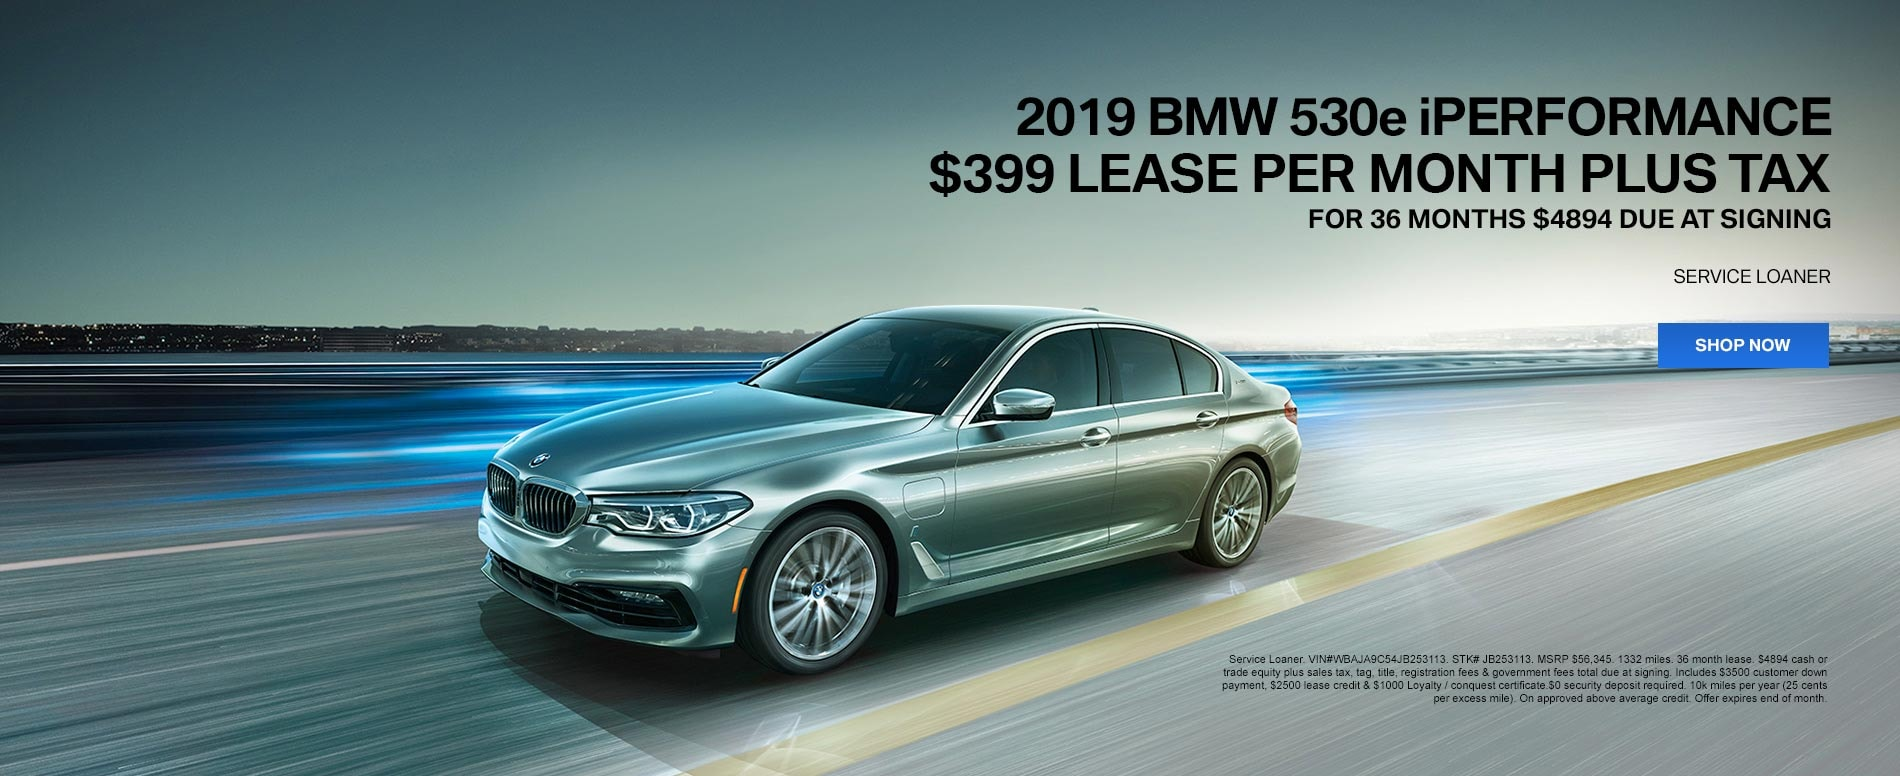 Bmw Dealership Near Me >> Bmw Of Buena Park Bmw Dealership Near Me In Orange County Ca